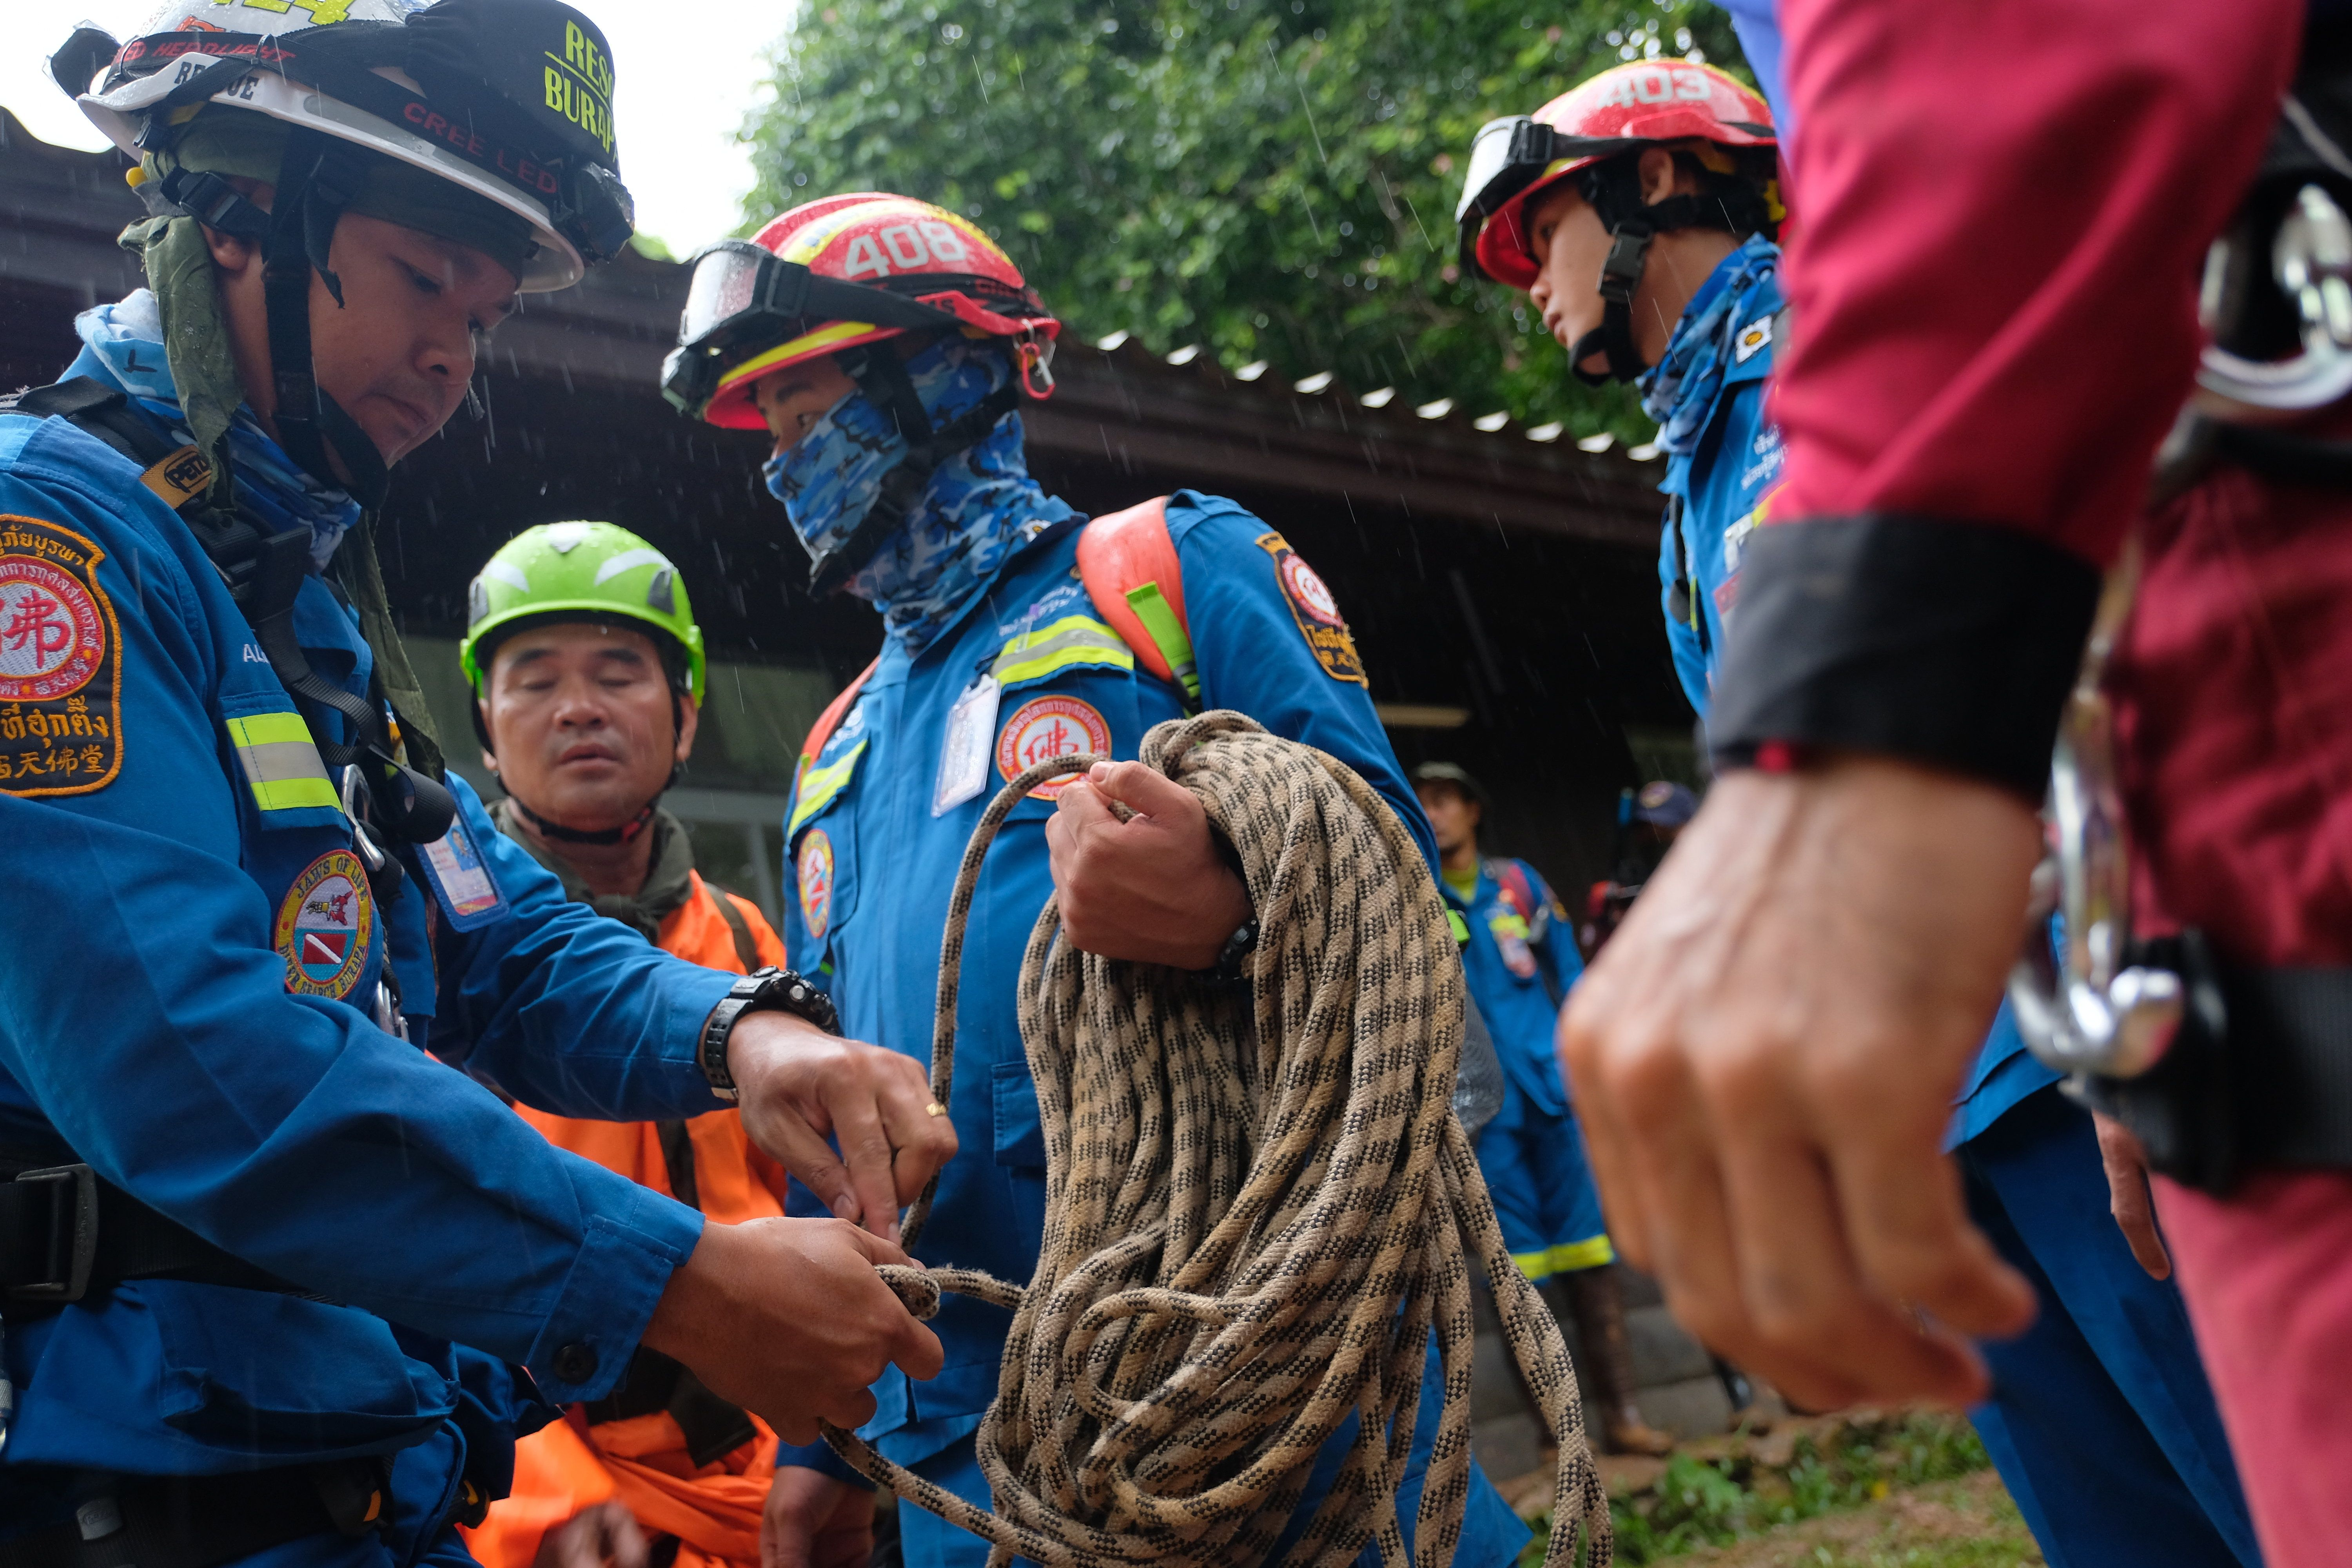 U.S. Forces Join Search For Teen Soccer Team Trapped In Flooded Cave In Thailand